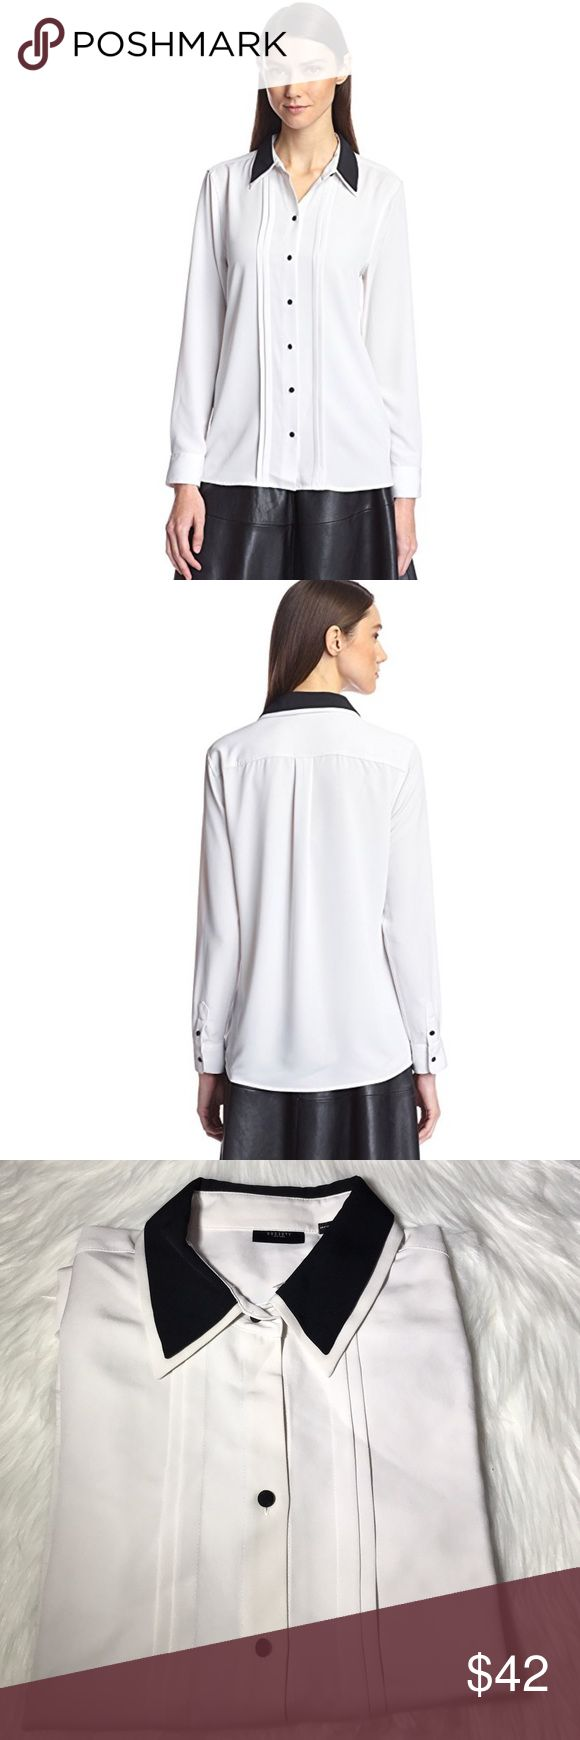 Illusion Double Collar Shirt The perfect shirt From desk to dinner. Modern double collar shirt with button front closure and 2-button cuffs. 100% Polyester. M Nordstrom Tops Blouses